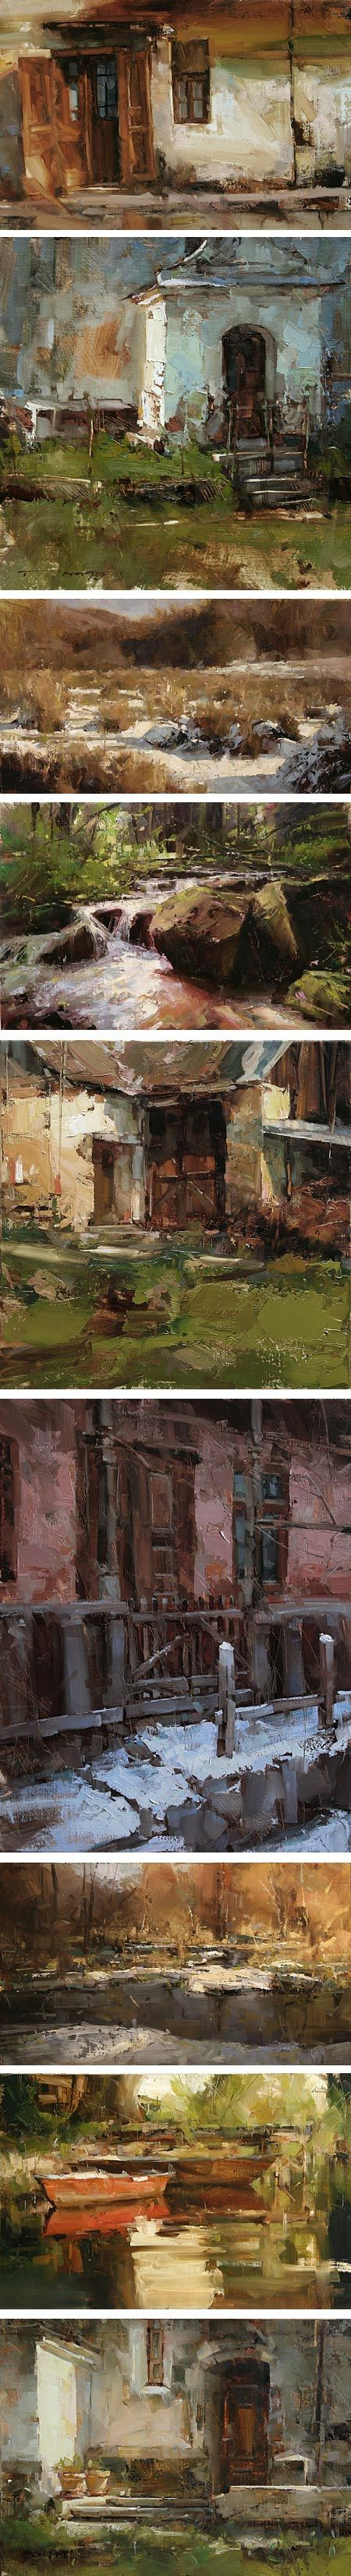 Tibor Nagy is an artist from Slovakia who paints plein air landscapes and townscapes with brusque, rough edged shards and chunks of color.